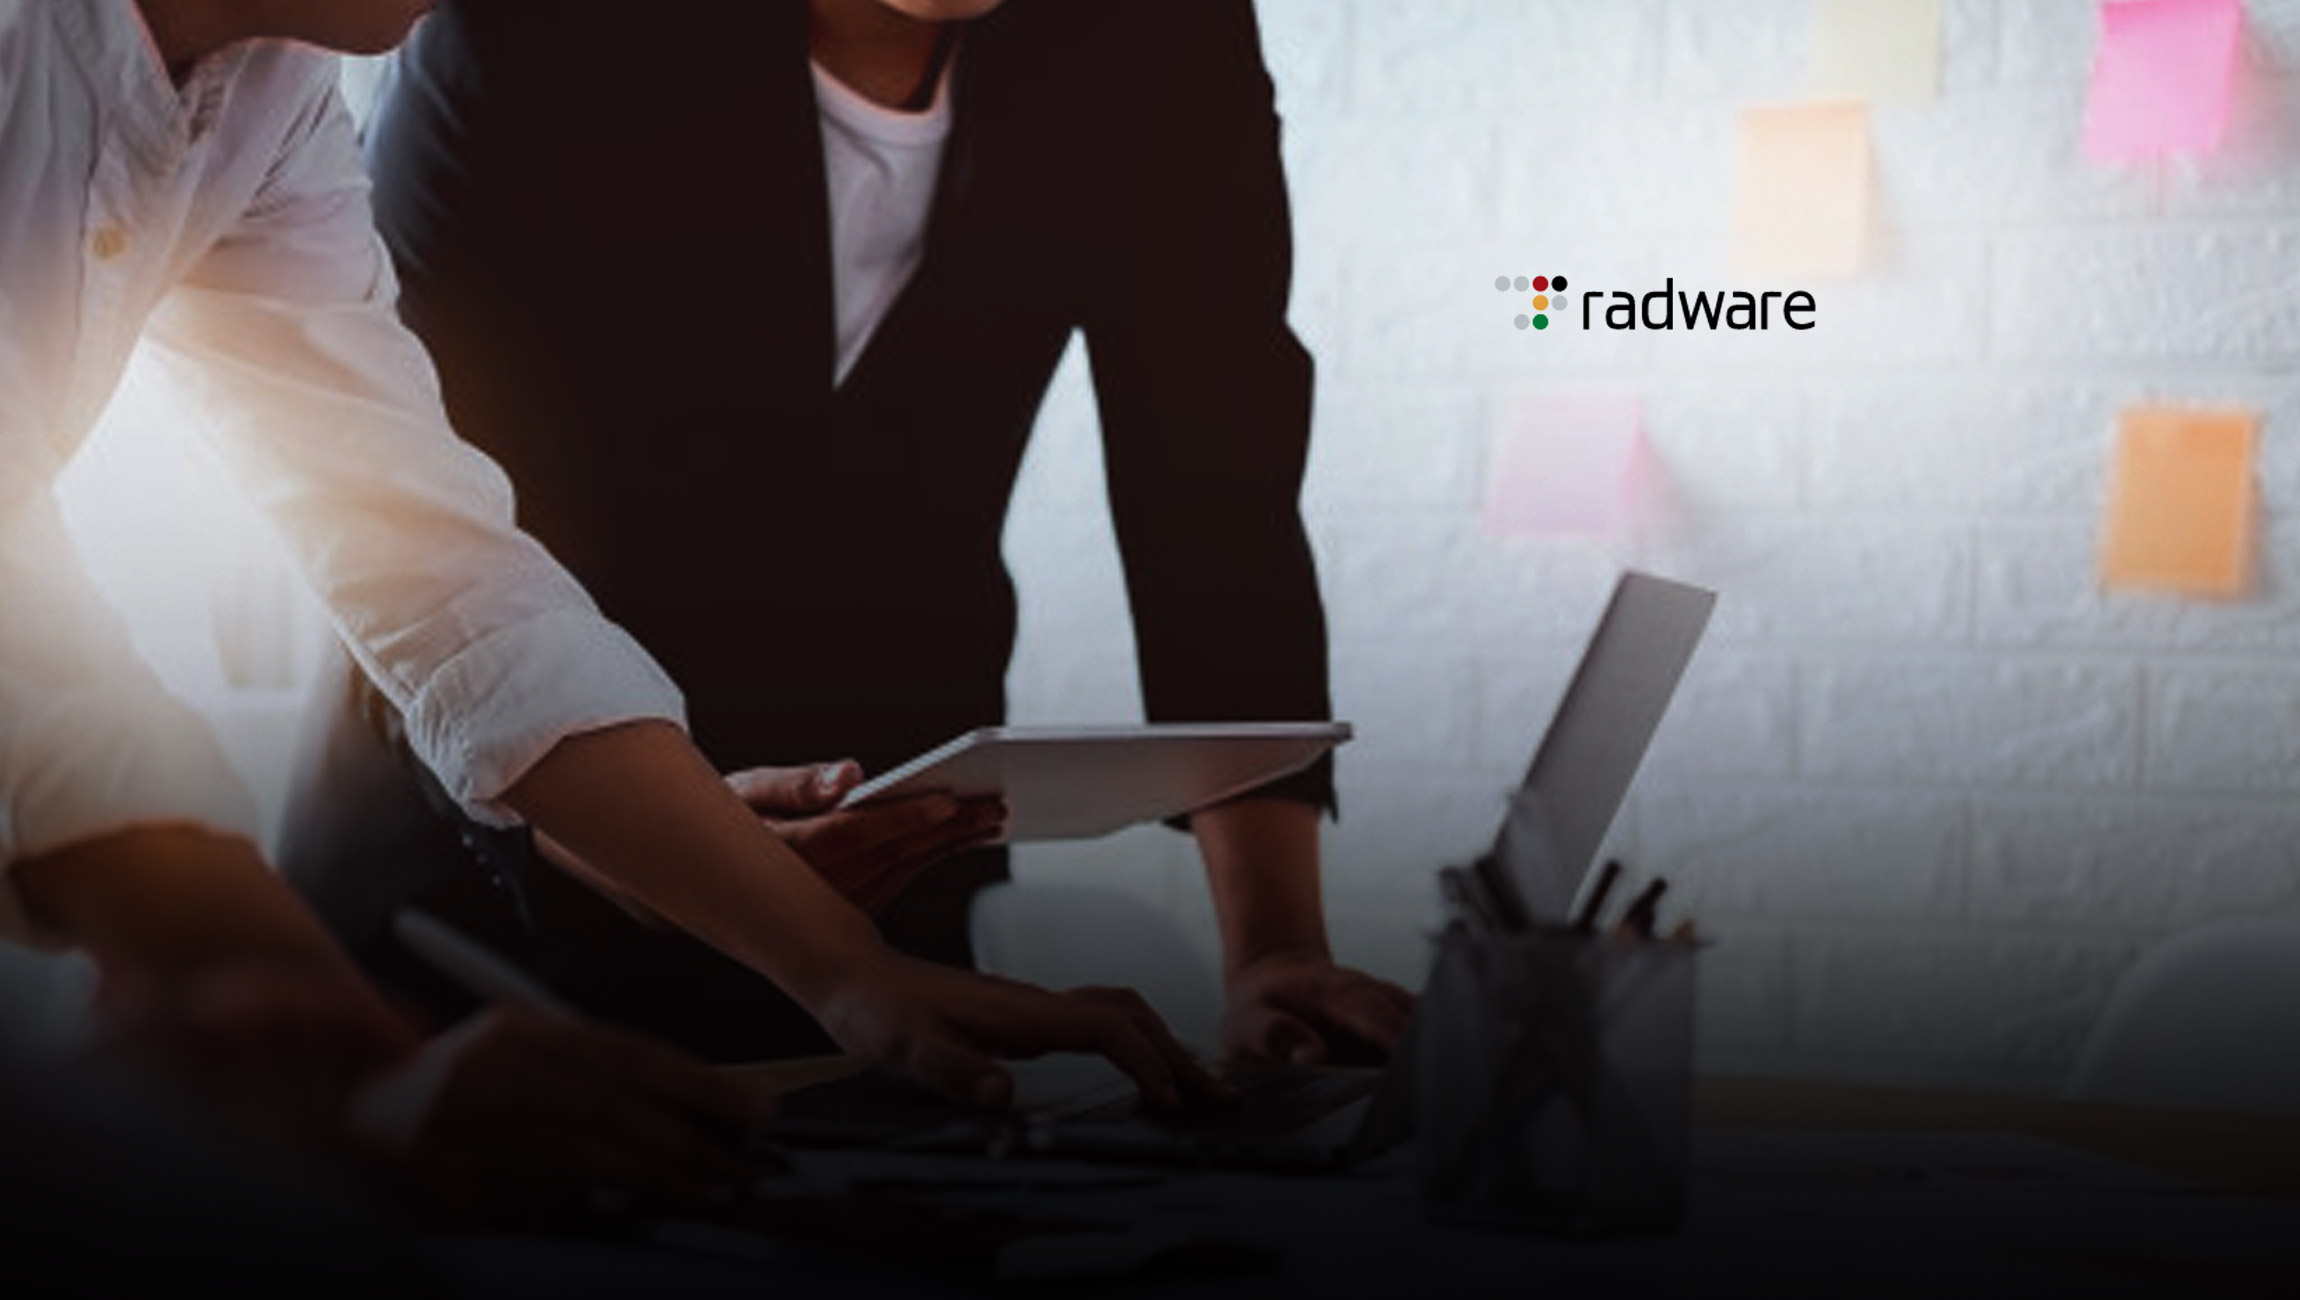 Radware's-Cloud-DDoS-Protection-Service-Selected-by-Fortune-100-Industrial-Company